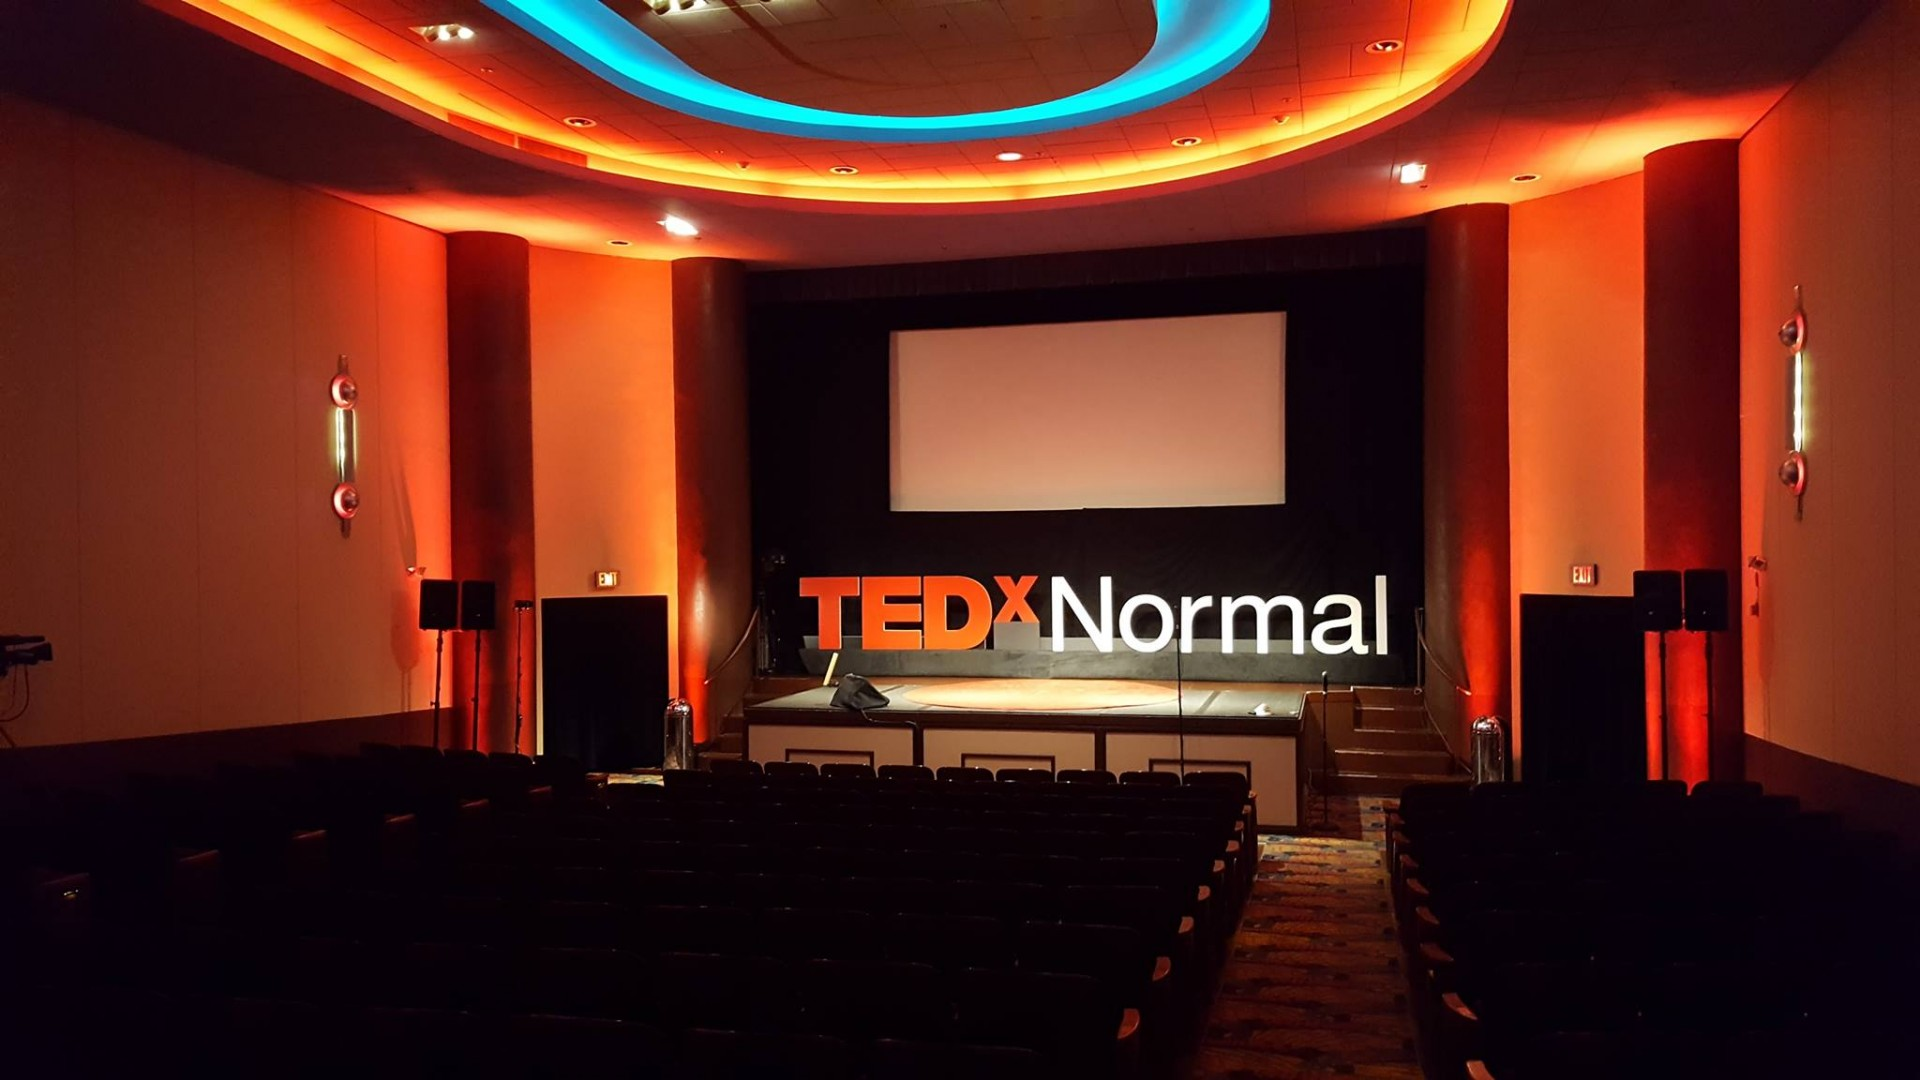 The last TEDx event in Bloomington -Normal was at the Normal Theater in October 2016. (Photo Credit: State Farm)